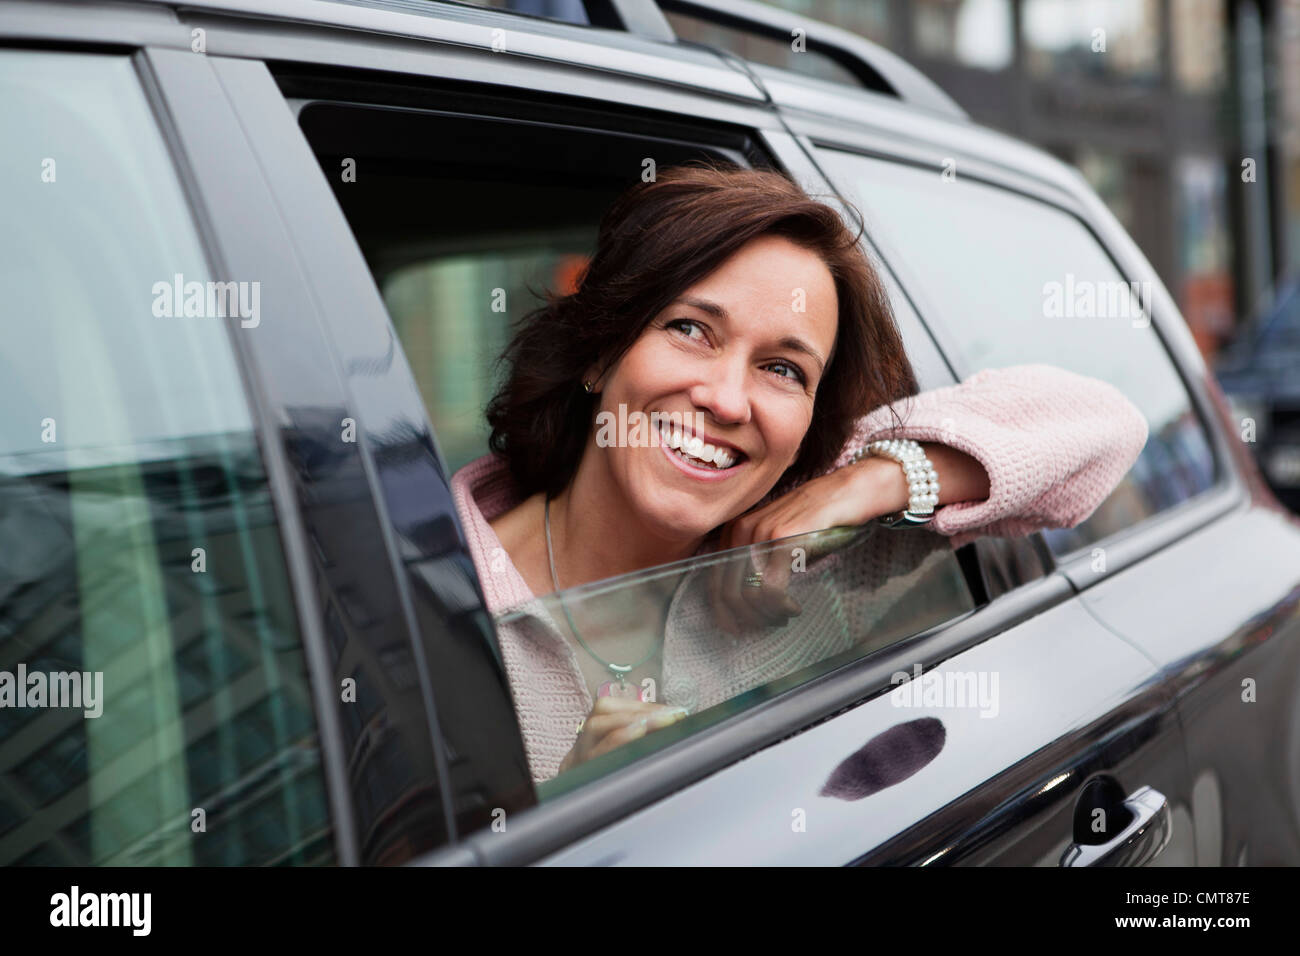 Woman leaning out from car window - Stock Image